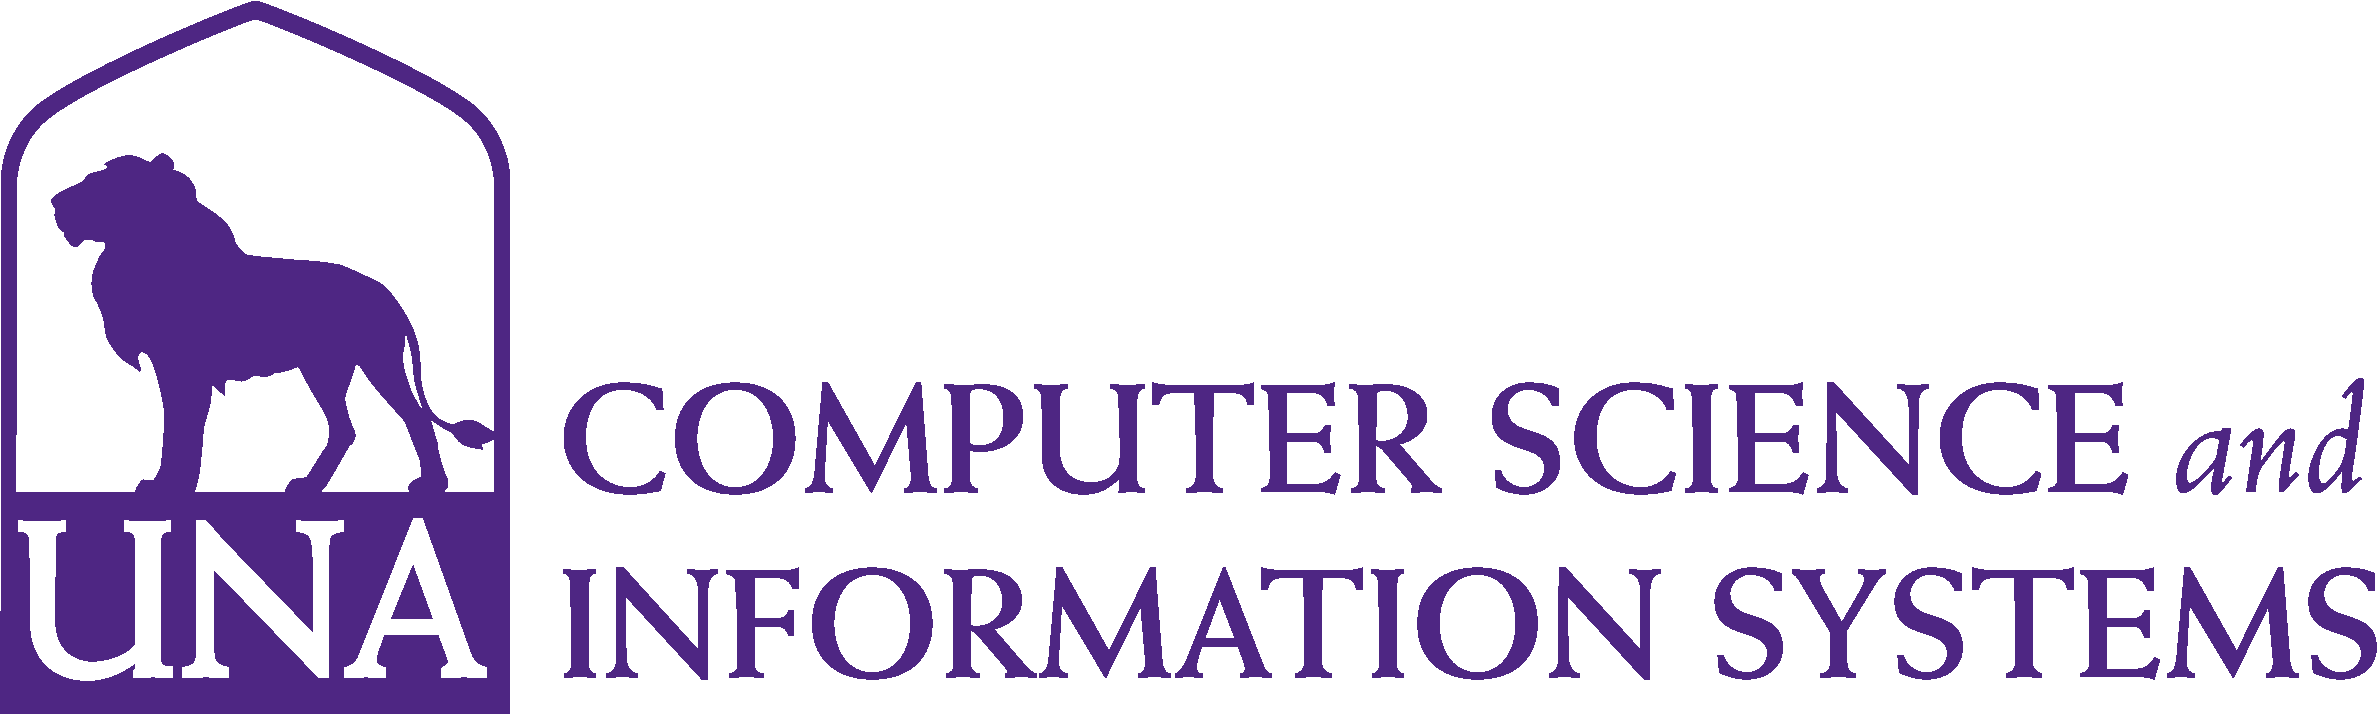 College of Business - Computer Science and Information Systems Logo - Purple - Version 3